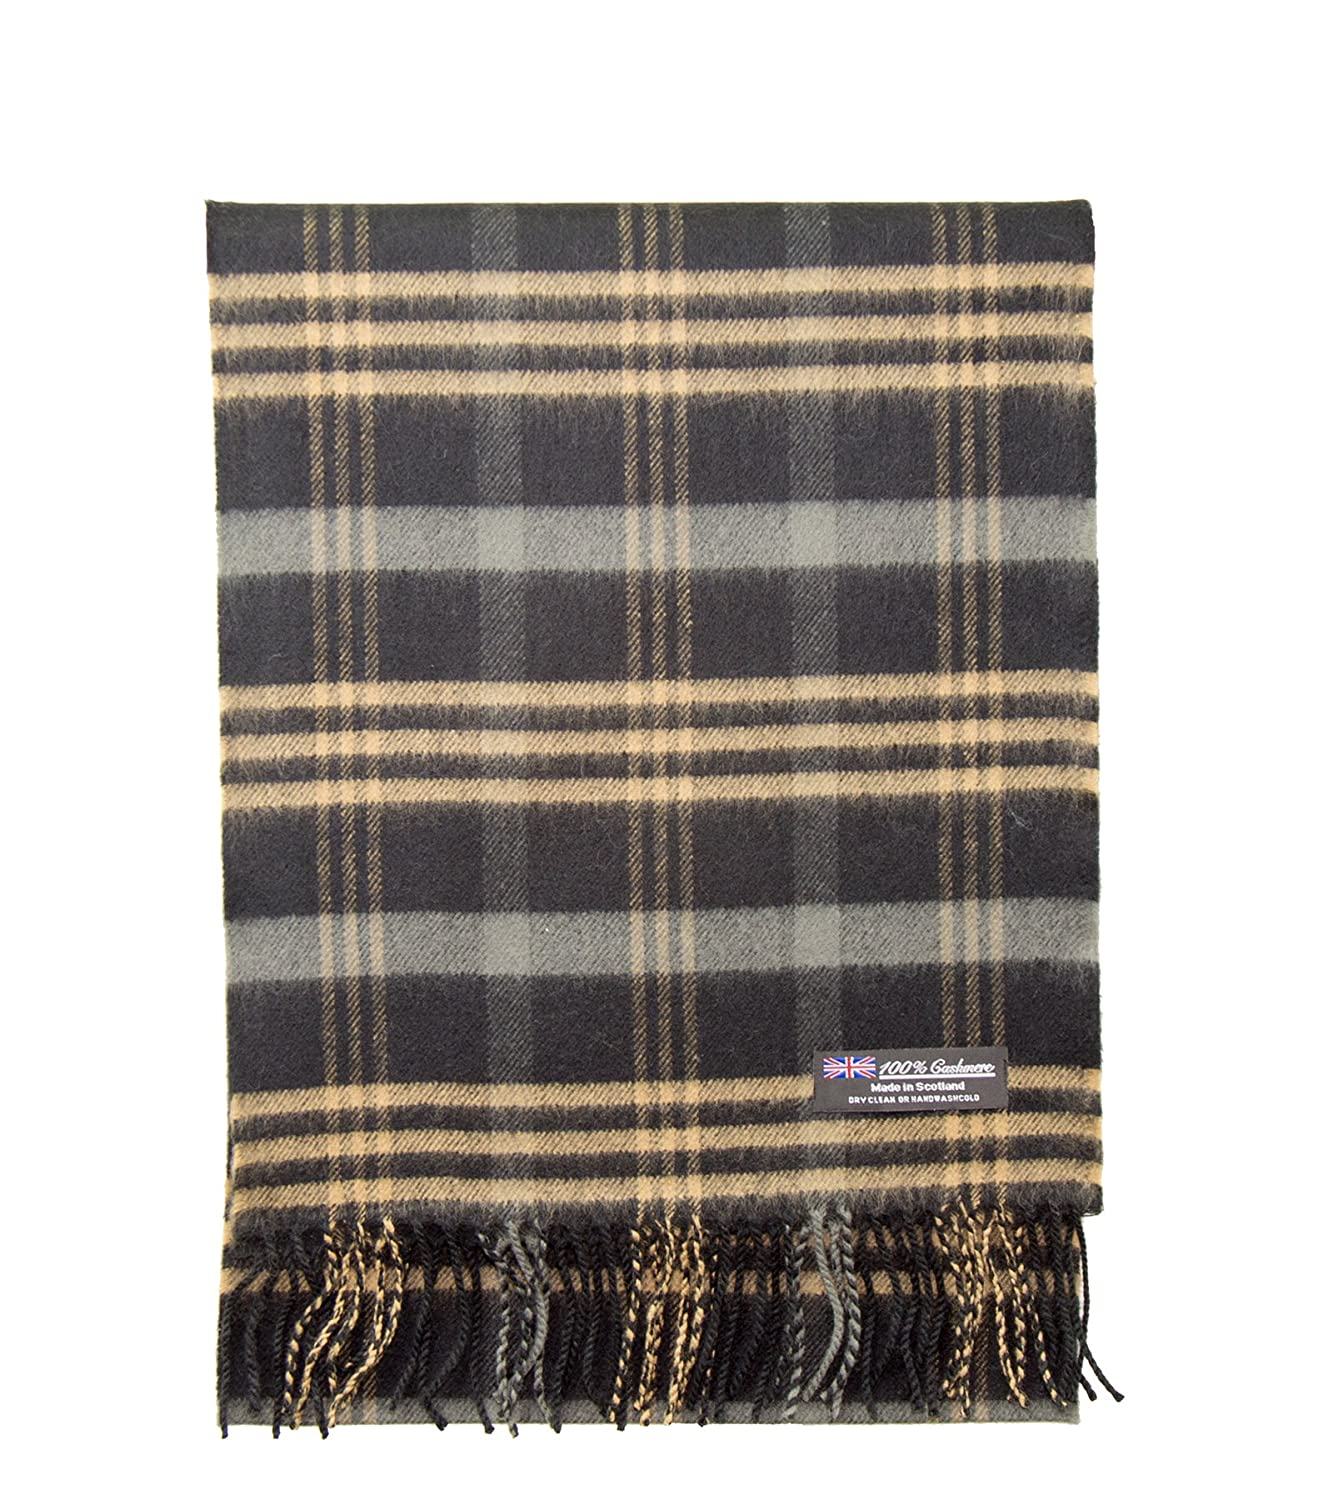 bb8f37d114b 2 PLY 100% Cashmere Scarf Elegant Collection Made in Scotland Wool Solid  Plaid